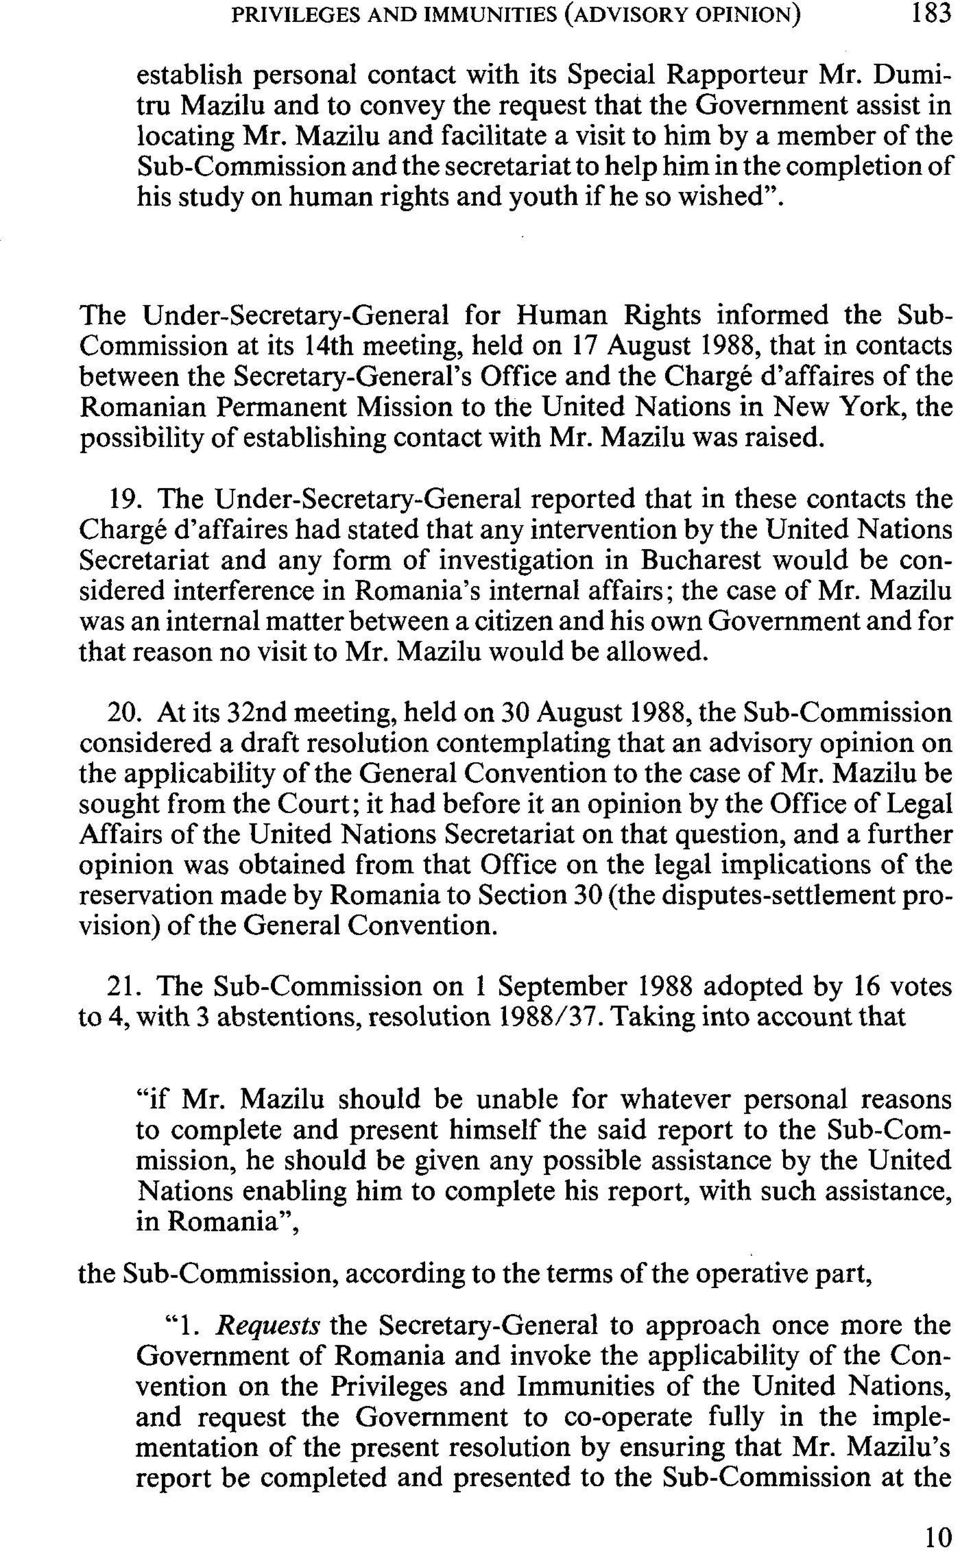 The Under-Secretary-General for Human Rights informed the Sub- Commission at its 14th meeting, held on 17 August 1988, that in contacts between the Secretary-General's Office and the Chargé